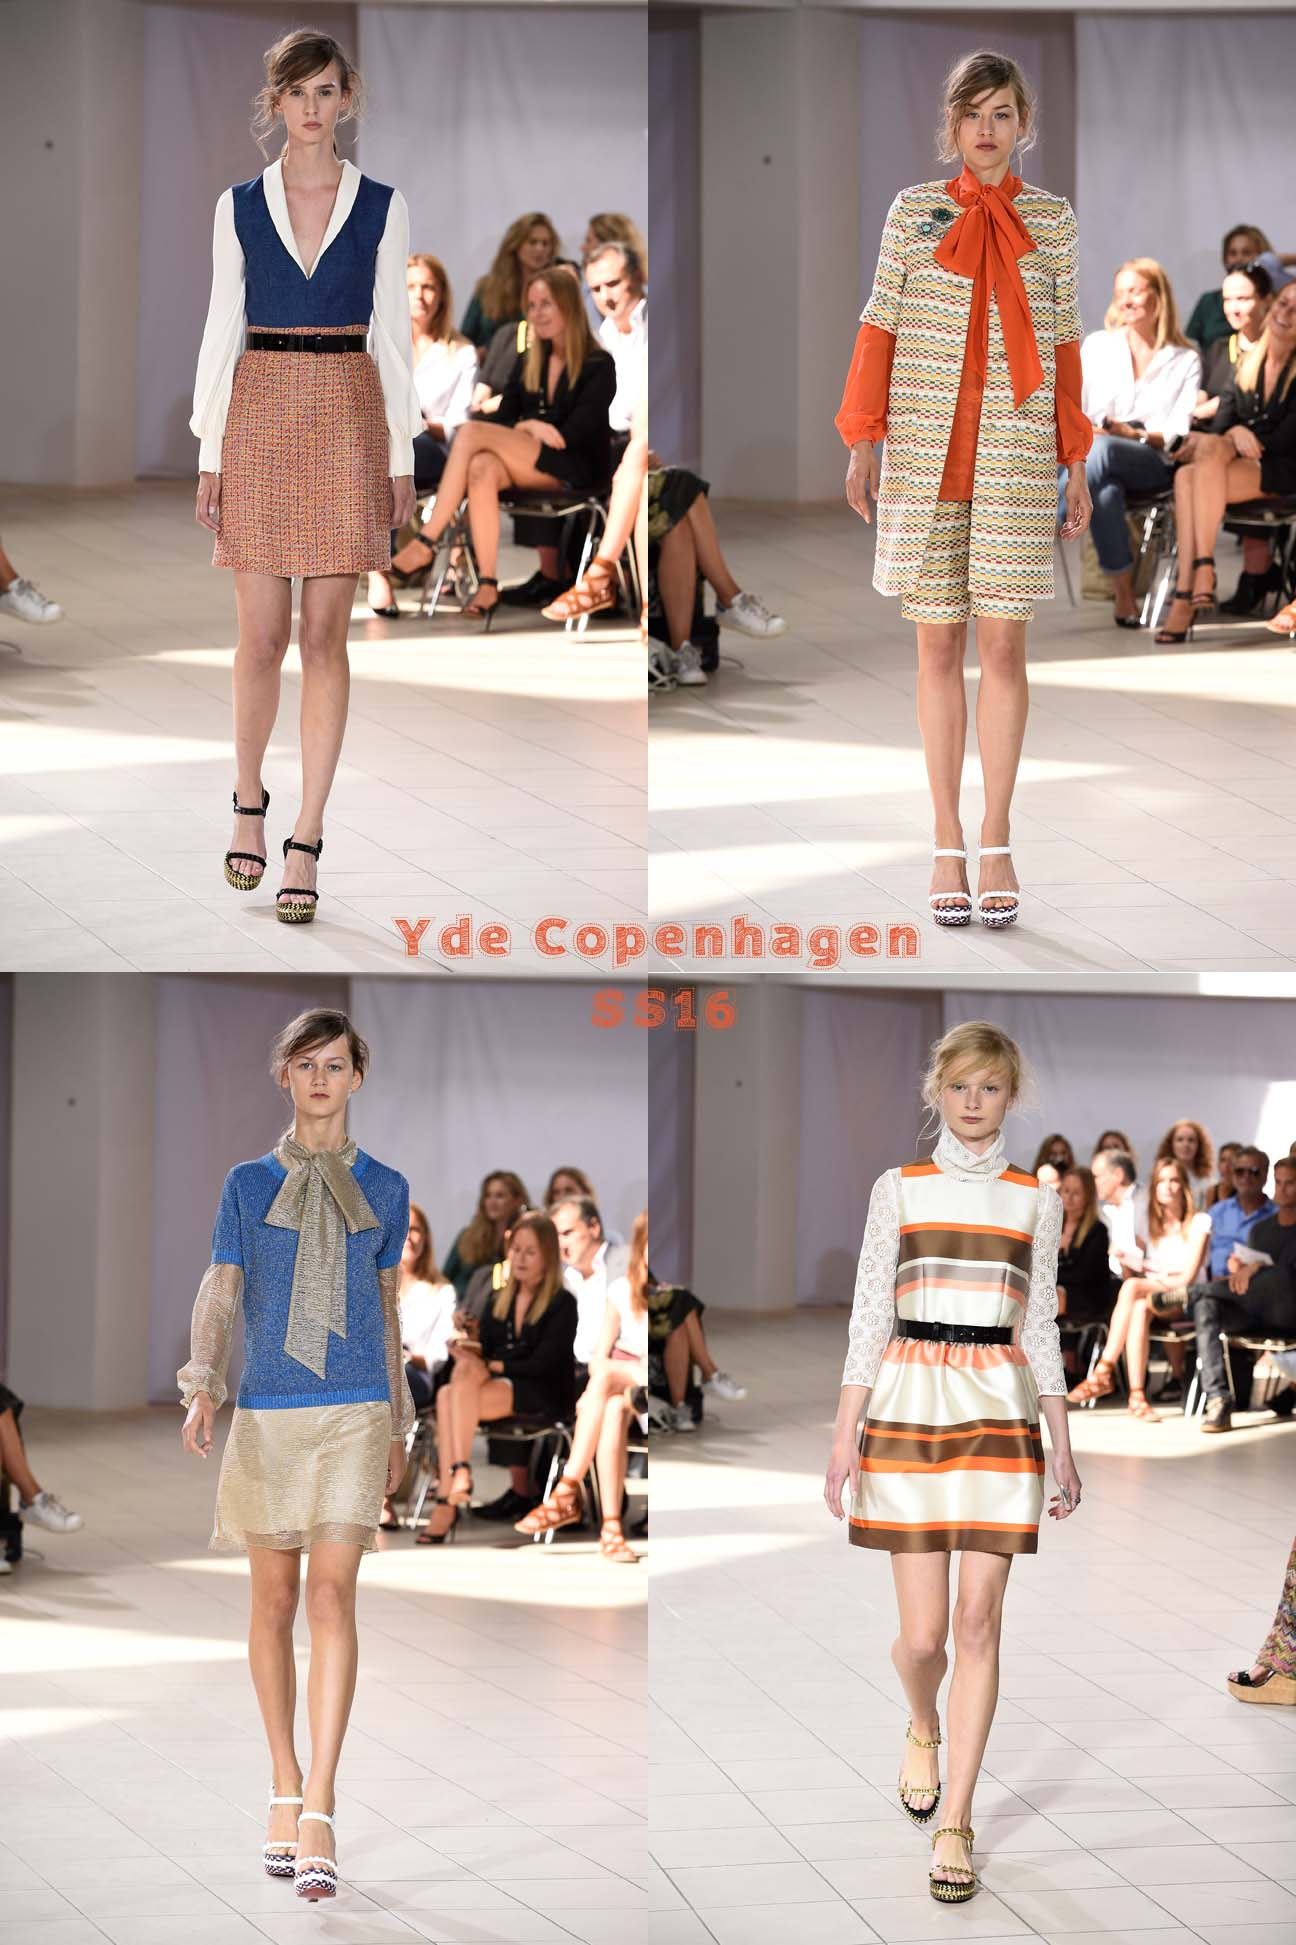 The Danish designer Ole Yde showed his SS16 Collection at the interior shop Paustion during the Copenhagen fashion Week.